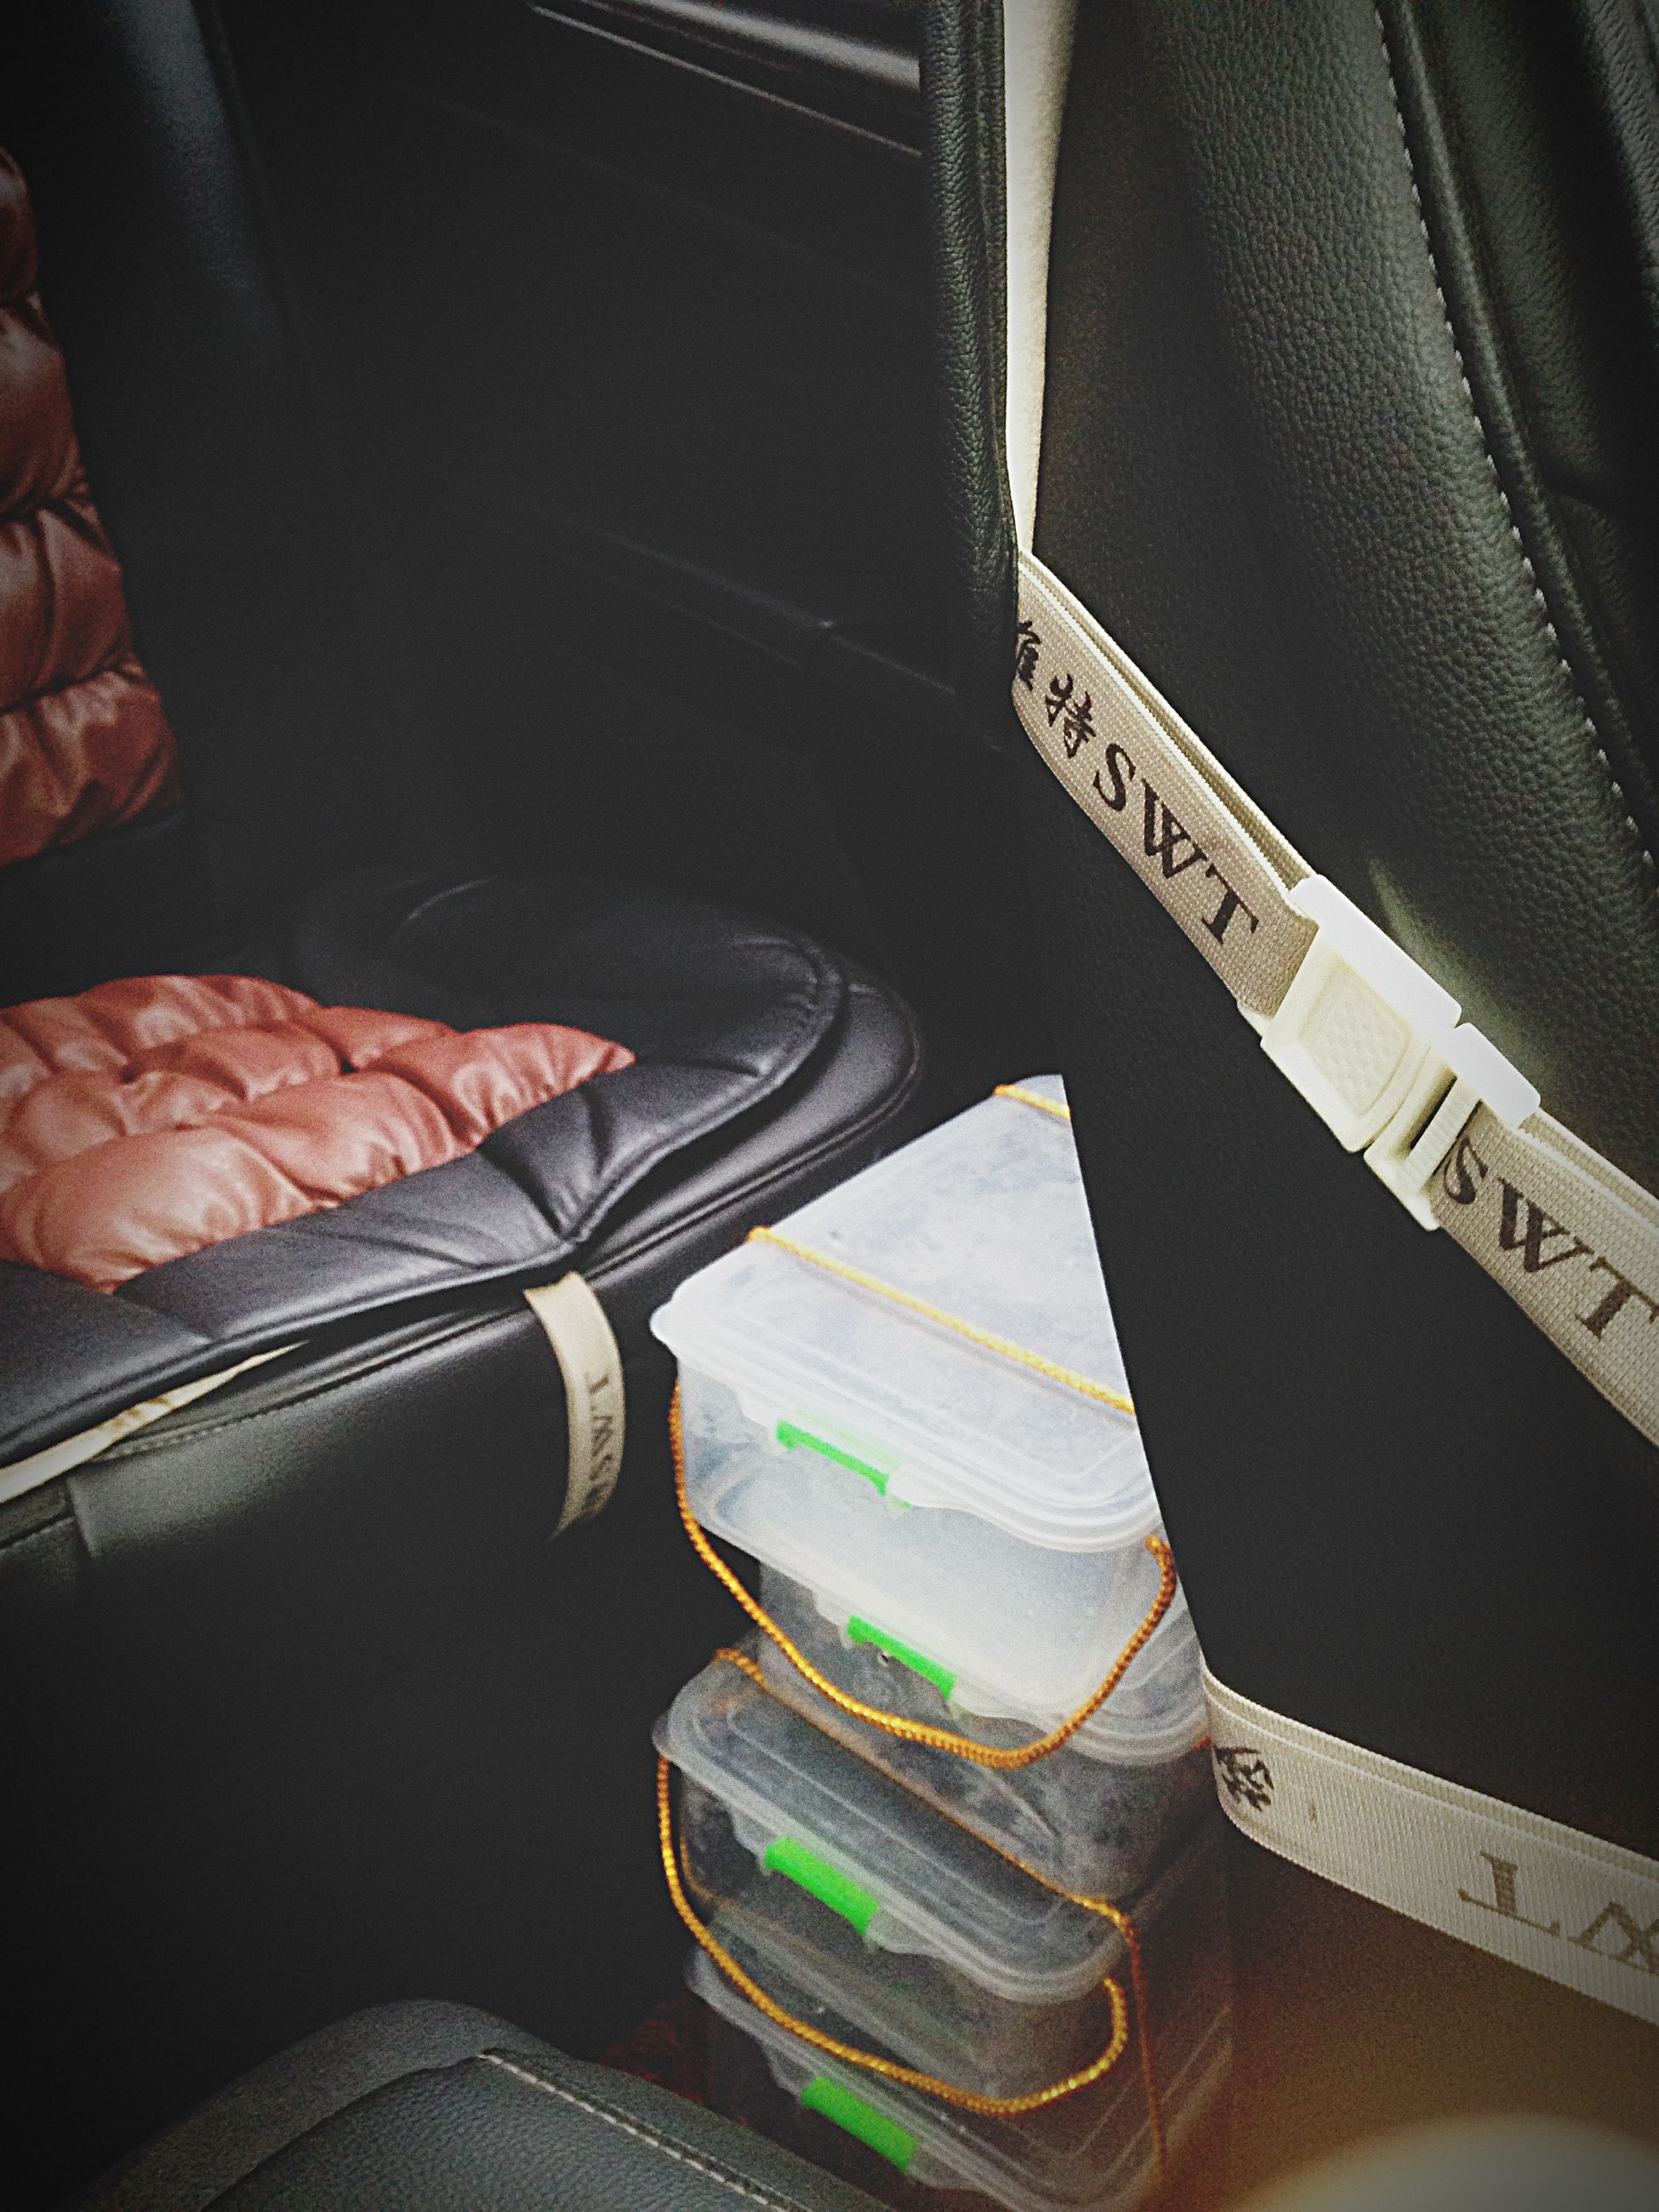 indoors, person, low section, high angle view, part of, shoe, seat, chair, close-up, relaxation, absence, music, sitting, textile, personal perspective, day, transportation